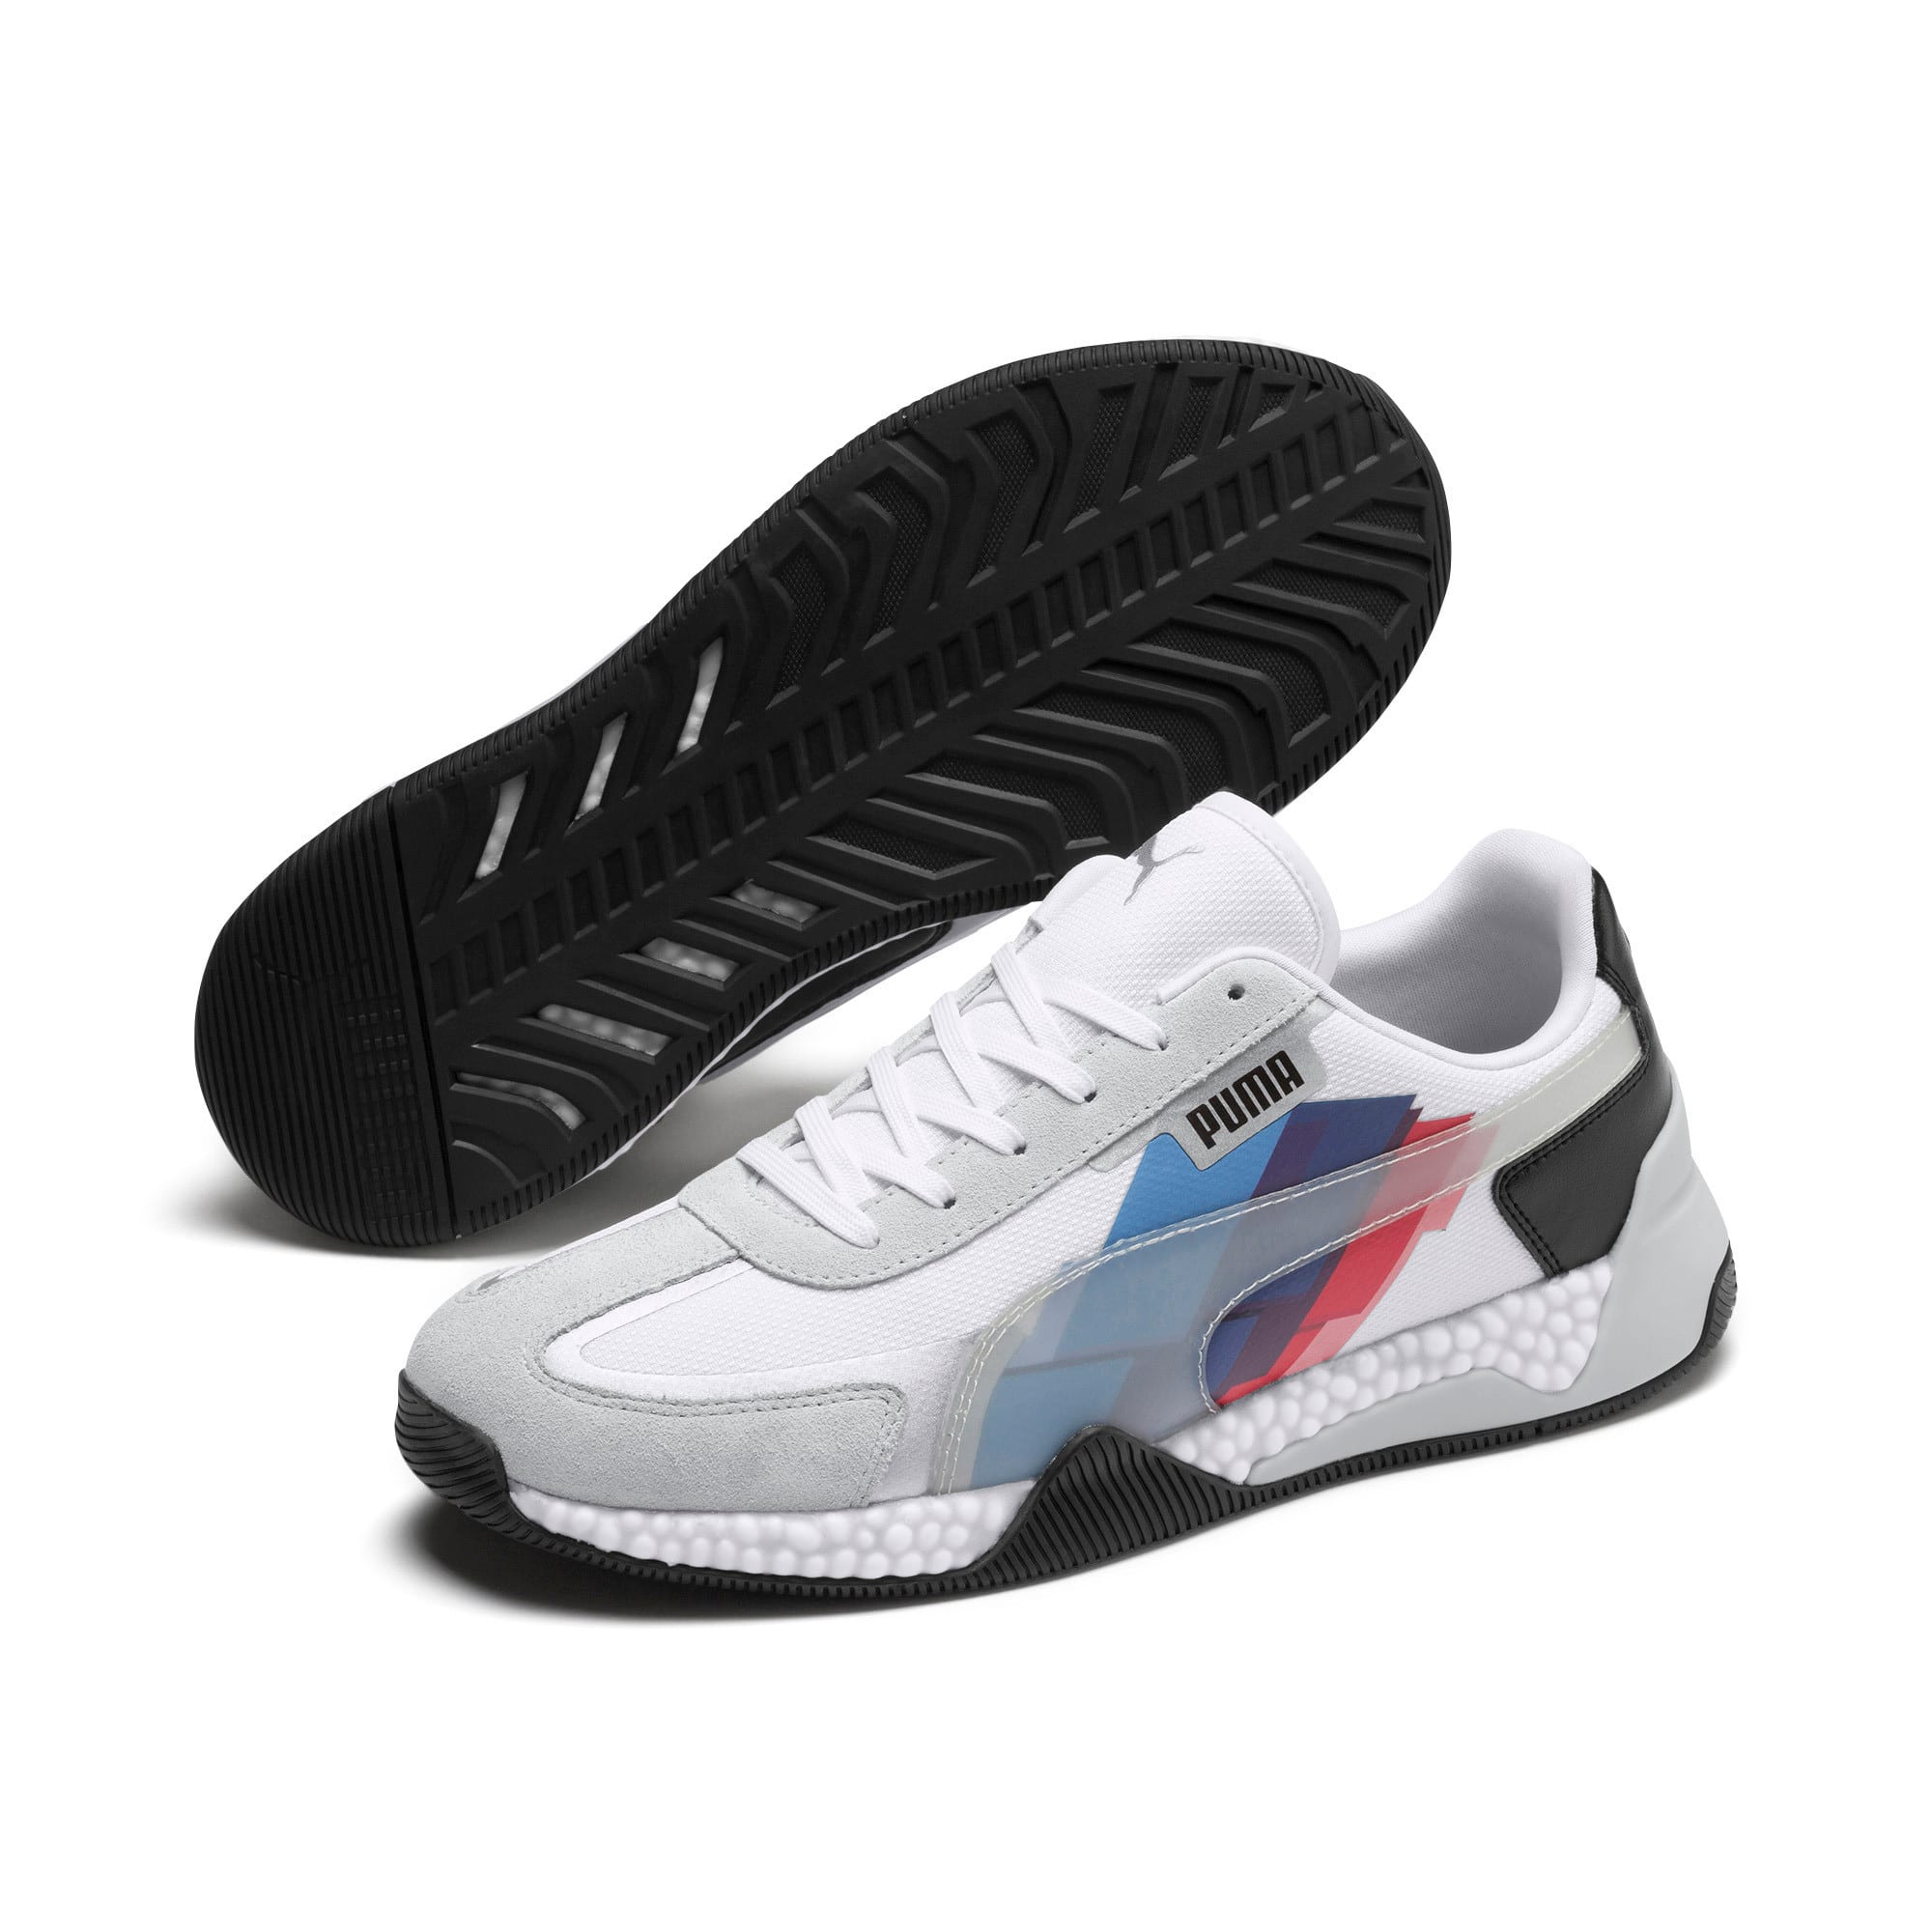 Thumbnail 3 of BMW M Motorsport Speed HYBRID Trainers, White-Glacier Gray-Black, medium